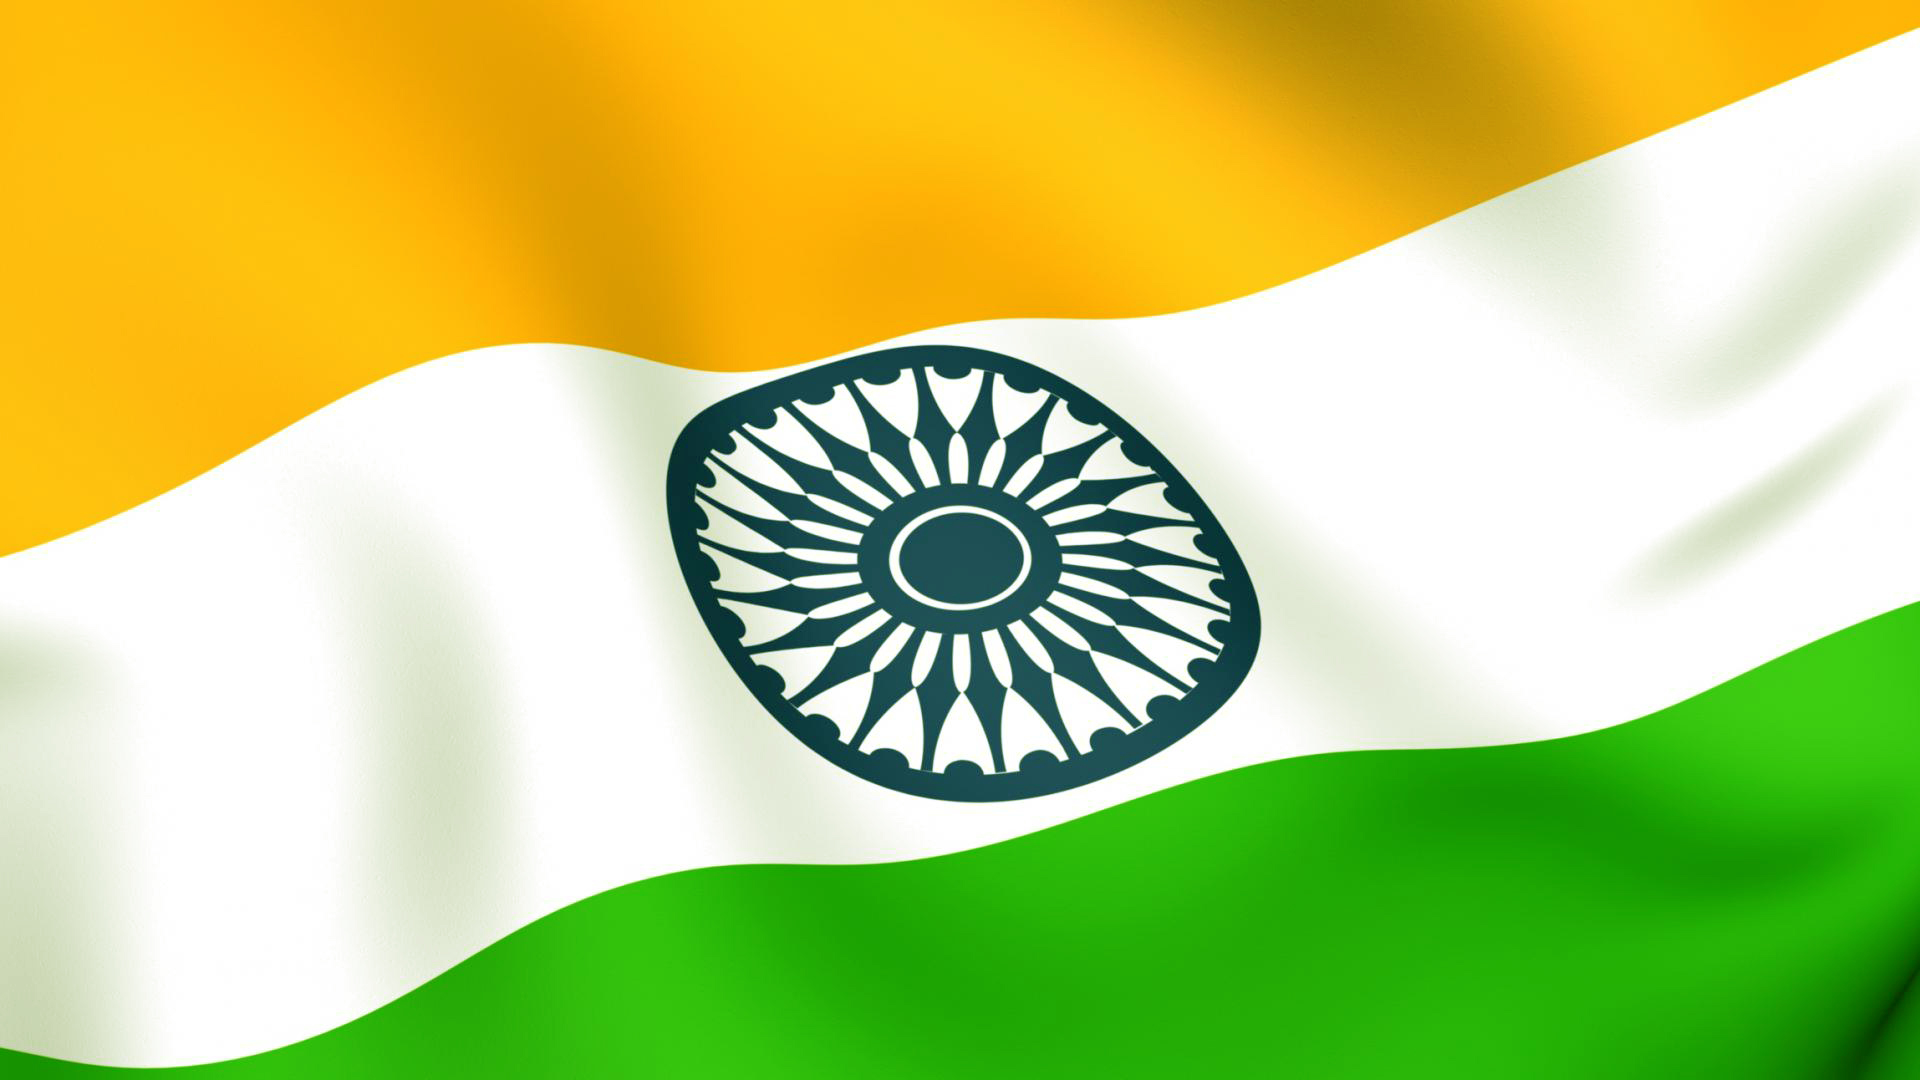 HD Wallpapers Indian Flag